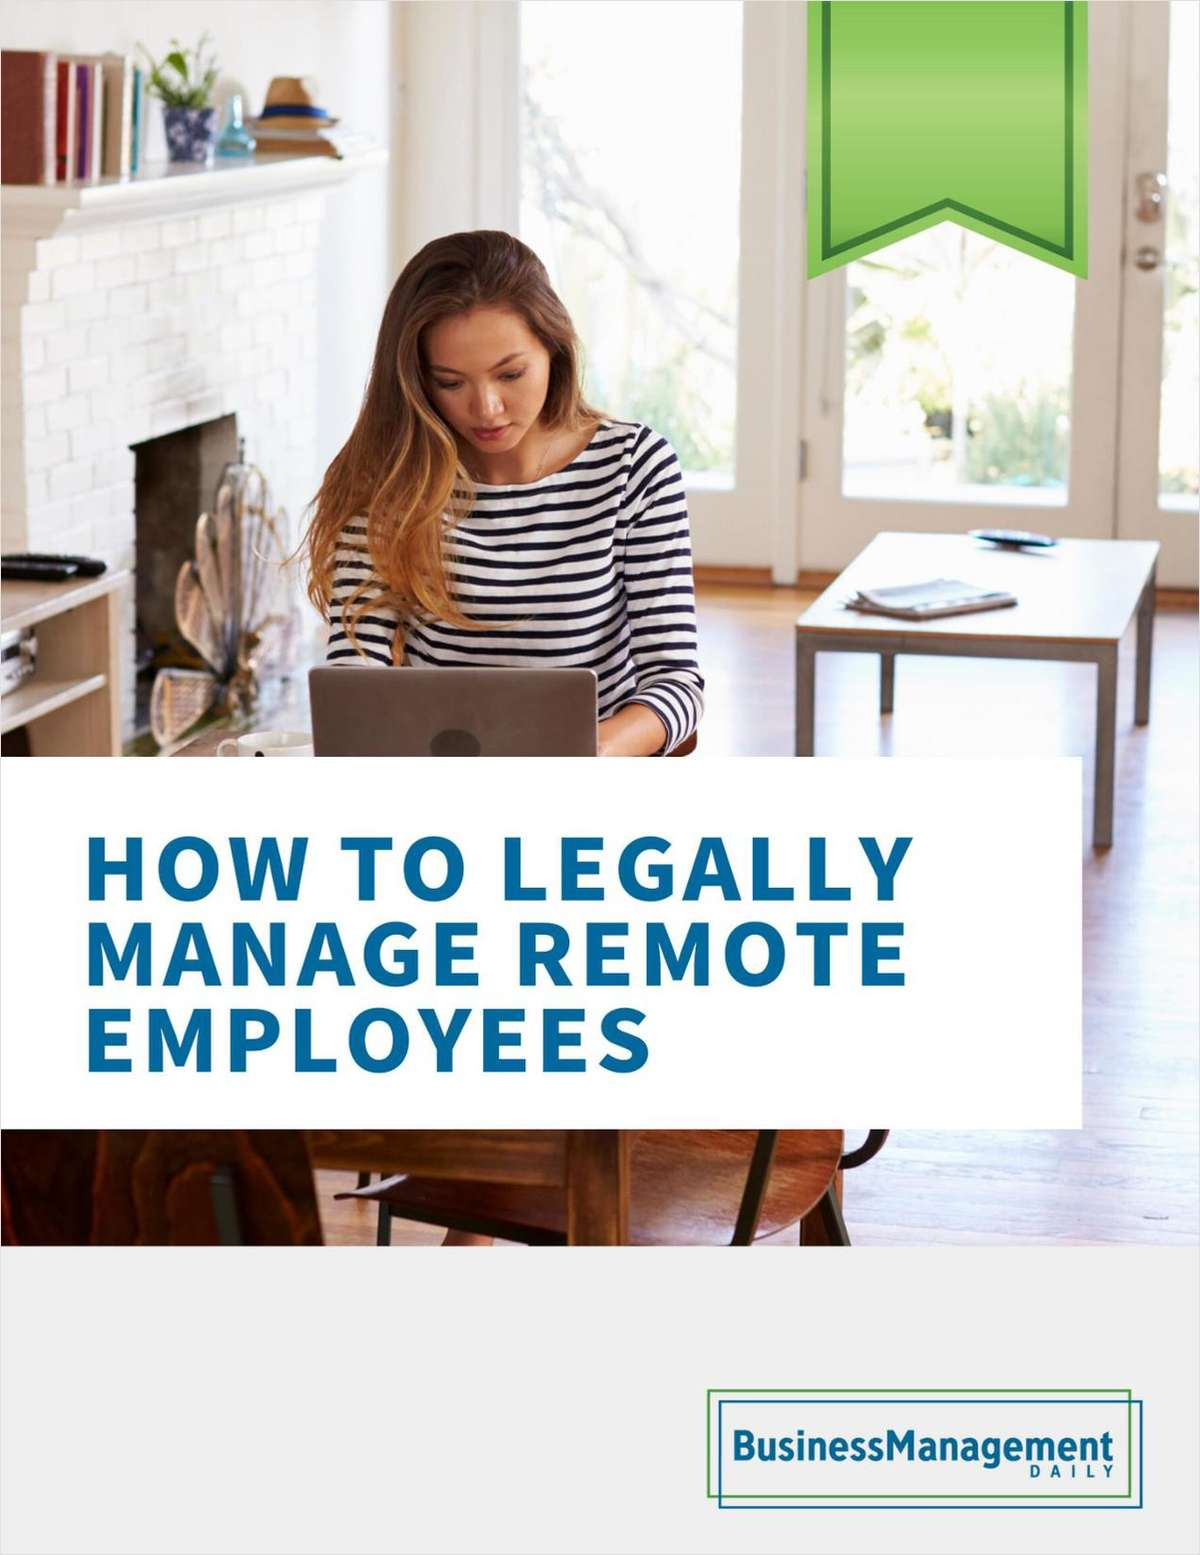 How to Legally Manage Remote Employees